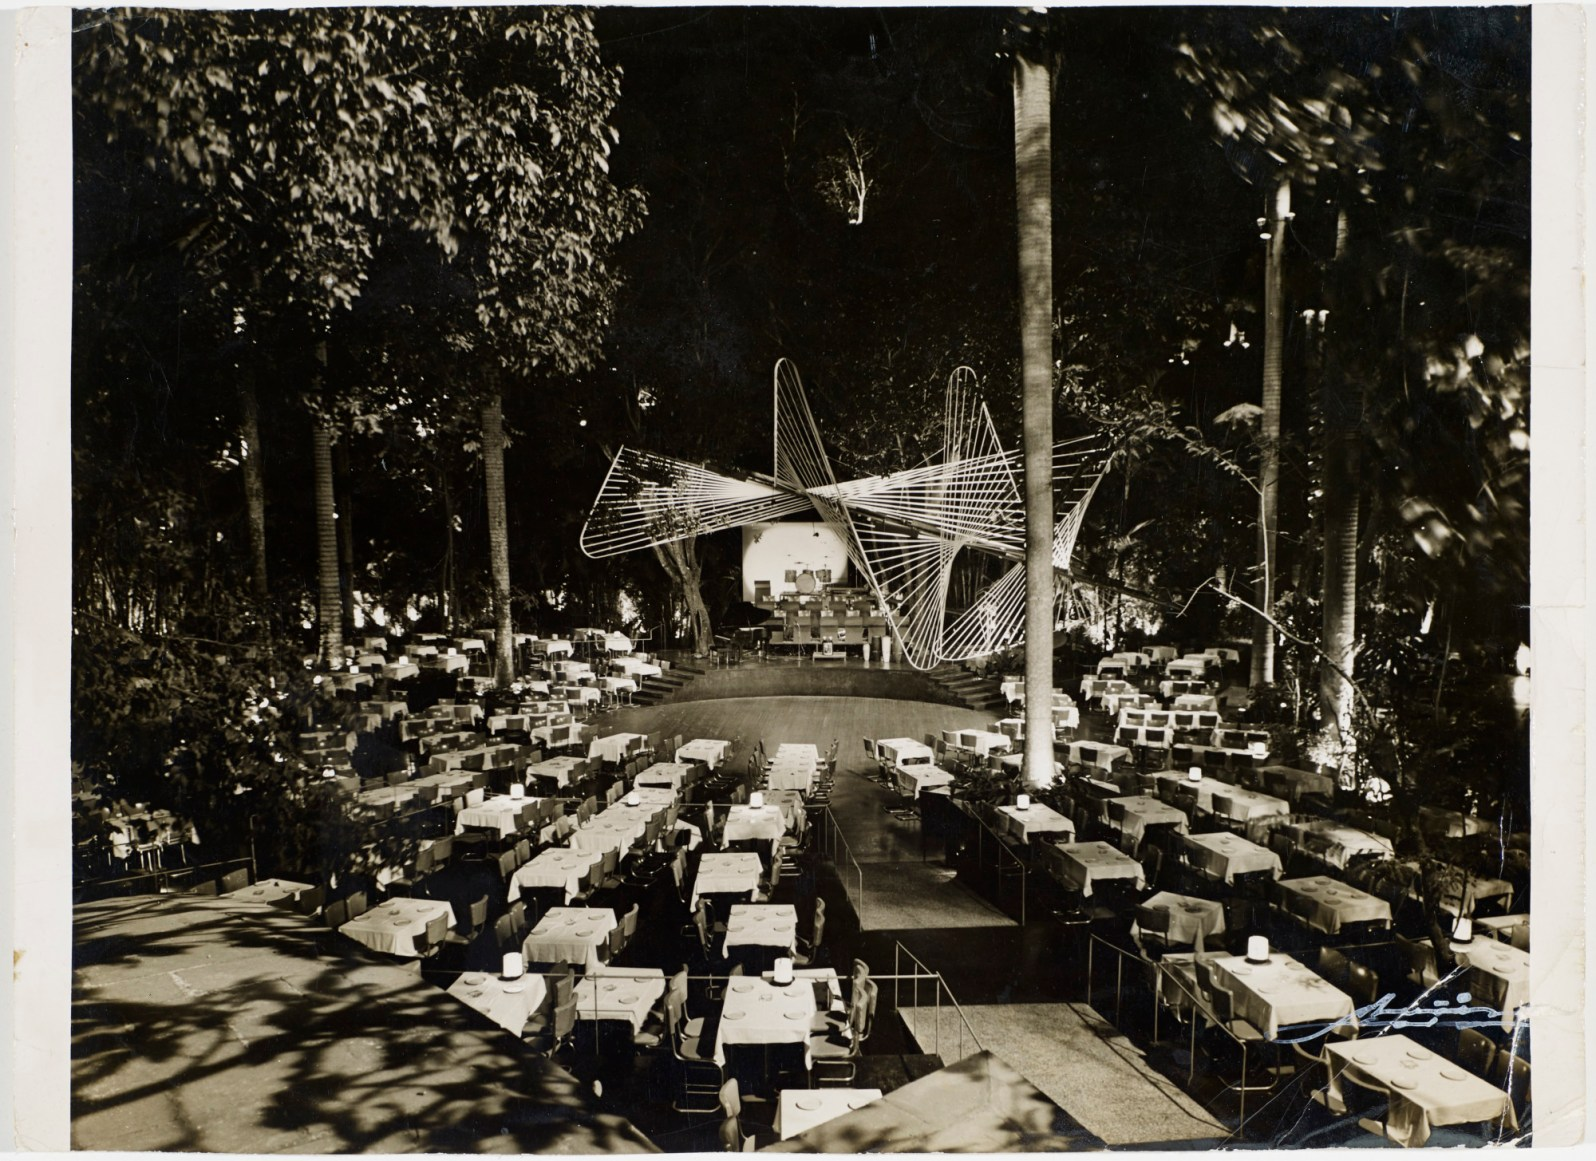 View of outdoor seating at Tropicana's Bajo las Estrellas (Under the Stars) cabaret, c. 1955 Vicente Muñiz (Cuban, 1917–2007) (Courtesy of The Wolfsonian–FIU, The Vicki Gold Levi Collection)